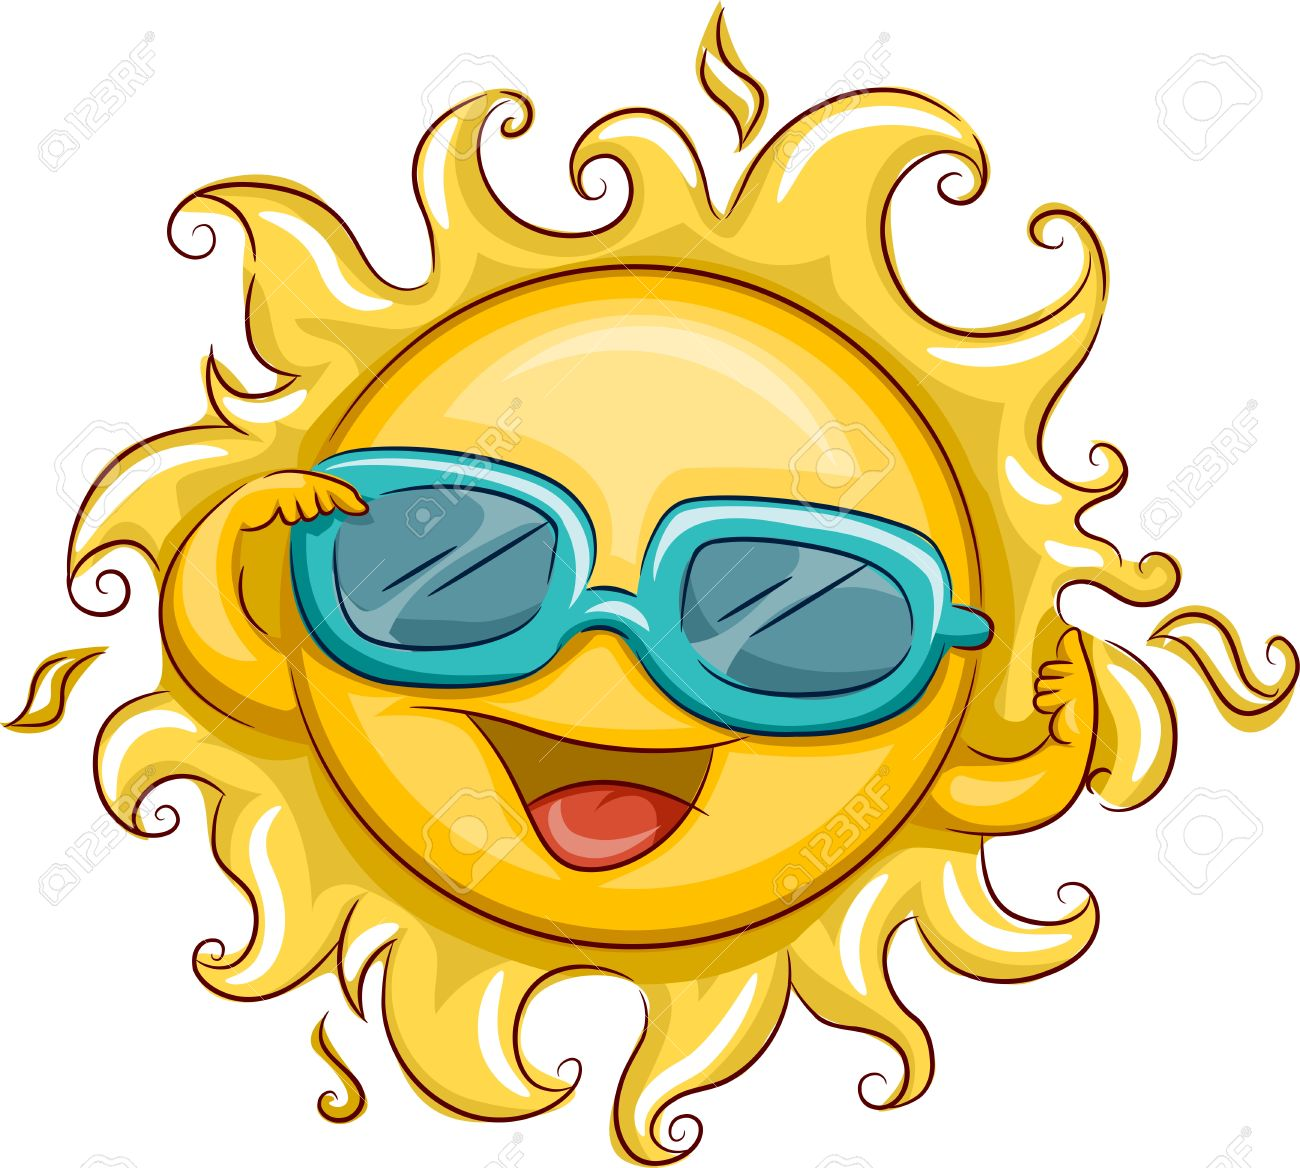 Smiling sun with sunglasses - Cool Sun Illustration Of A Smiling Sun Wearing Sunglasses Source Illustration Of The Sun Wearing Sunglasses Stock Photo Picture